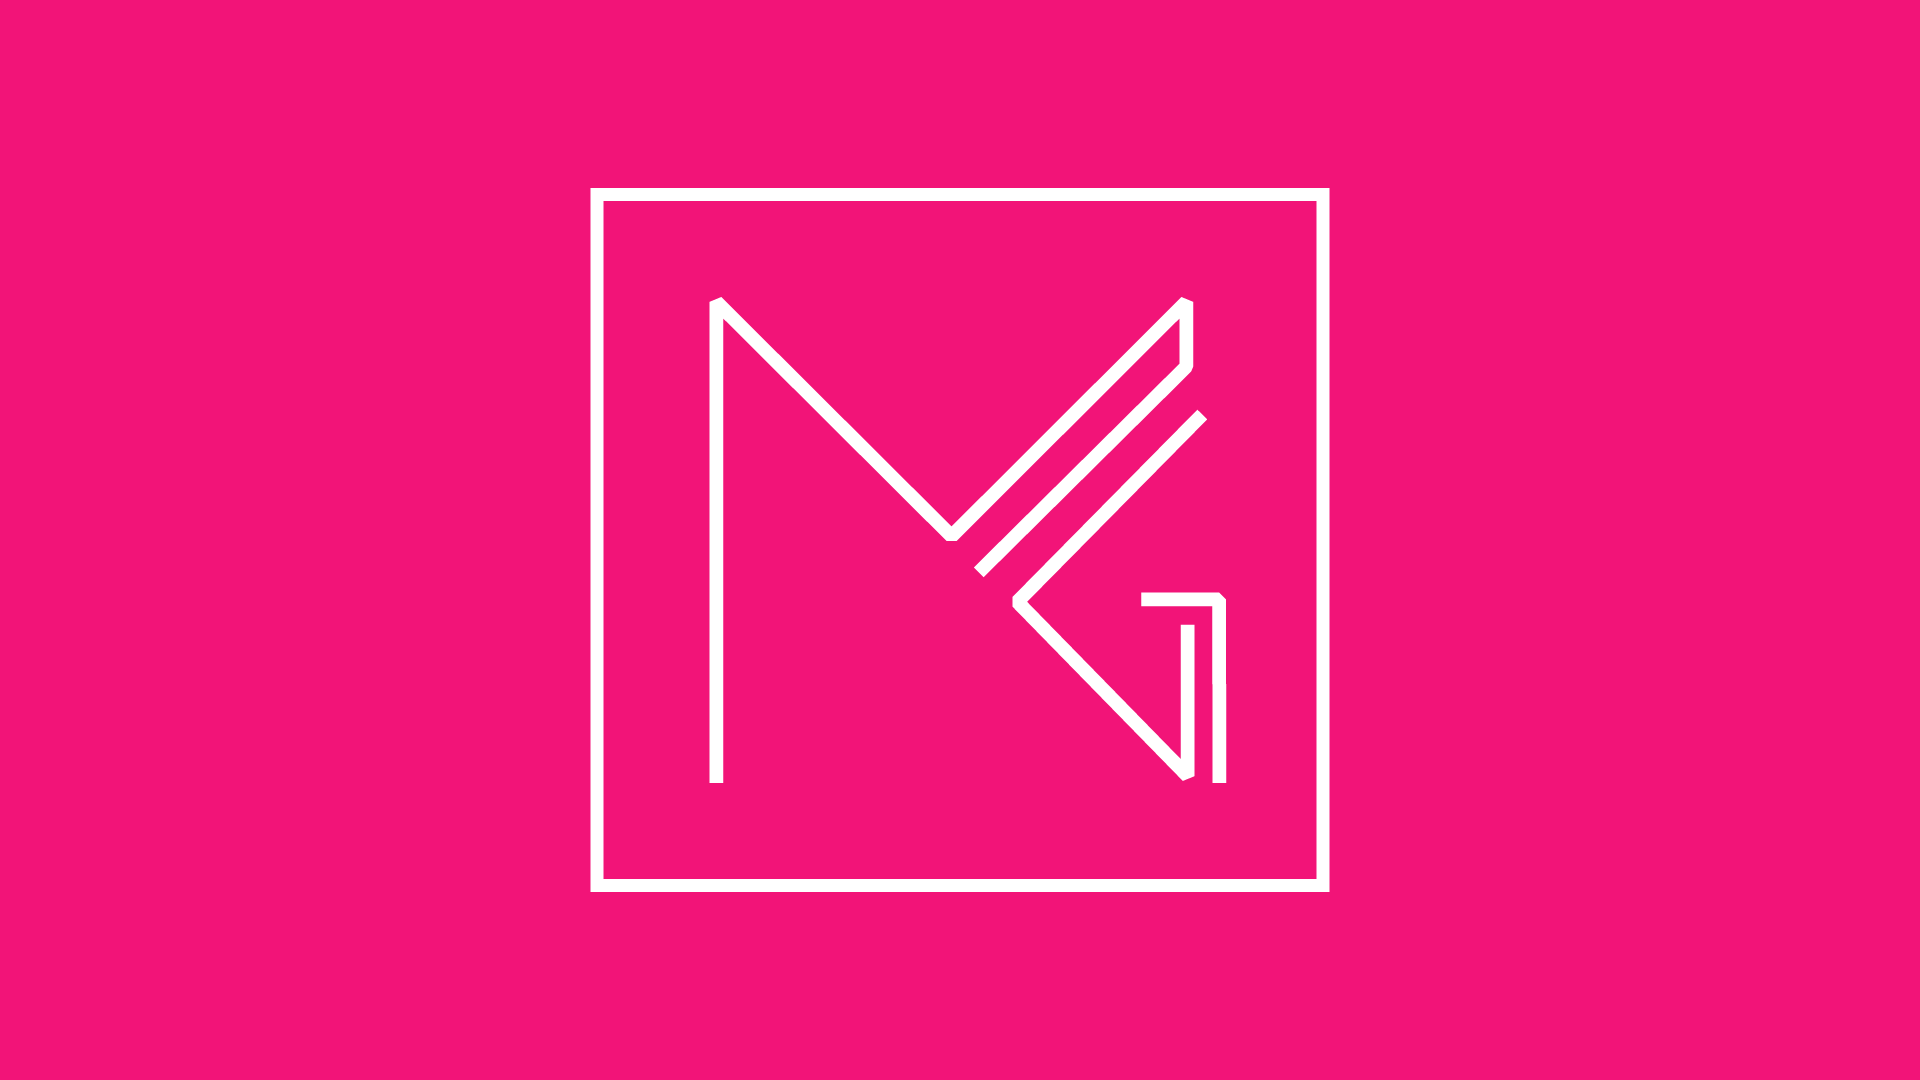 MG-Motion-pink-01.png